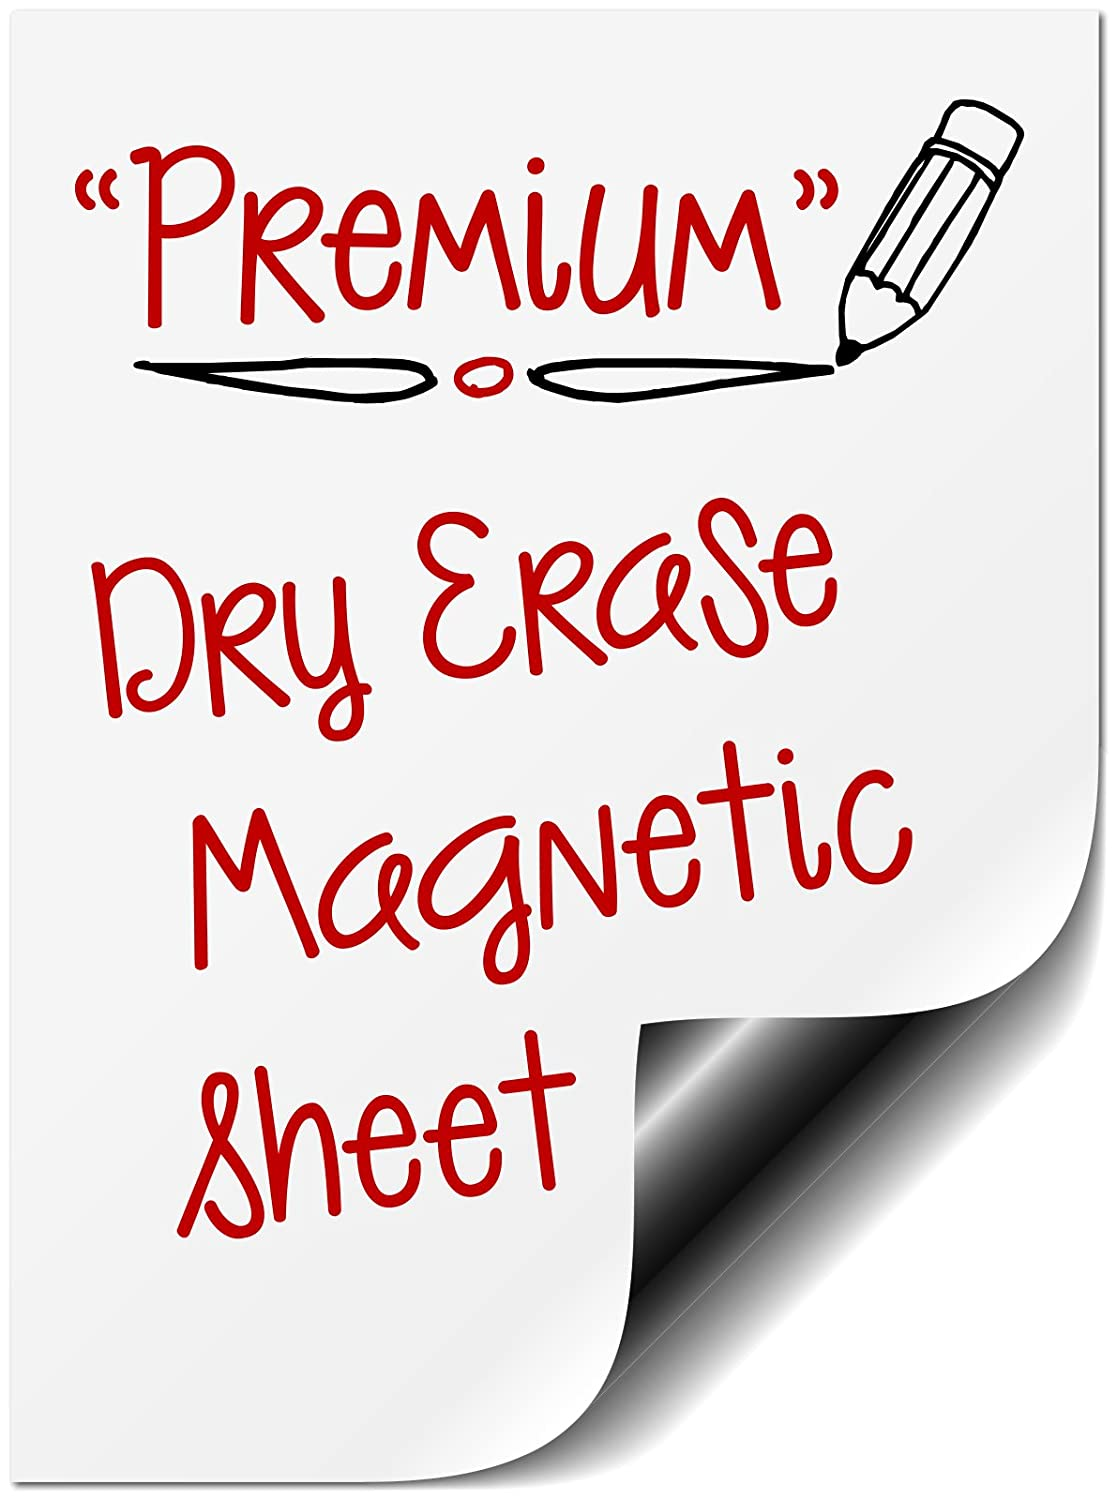 """Bigtime Mini Magnetic Dry Erase Message Board for Refrigerator Horizontal or Vertical Whiteboard Planner Fridge Magnet. Also Great as a Meal, Grocery, To Do or Chore List.(8.5 x 11"""" Small Blank)"""